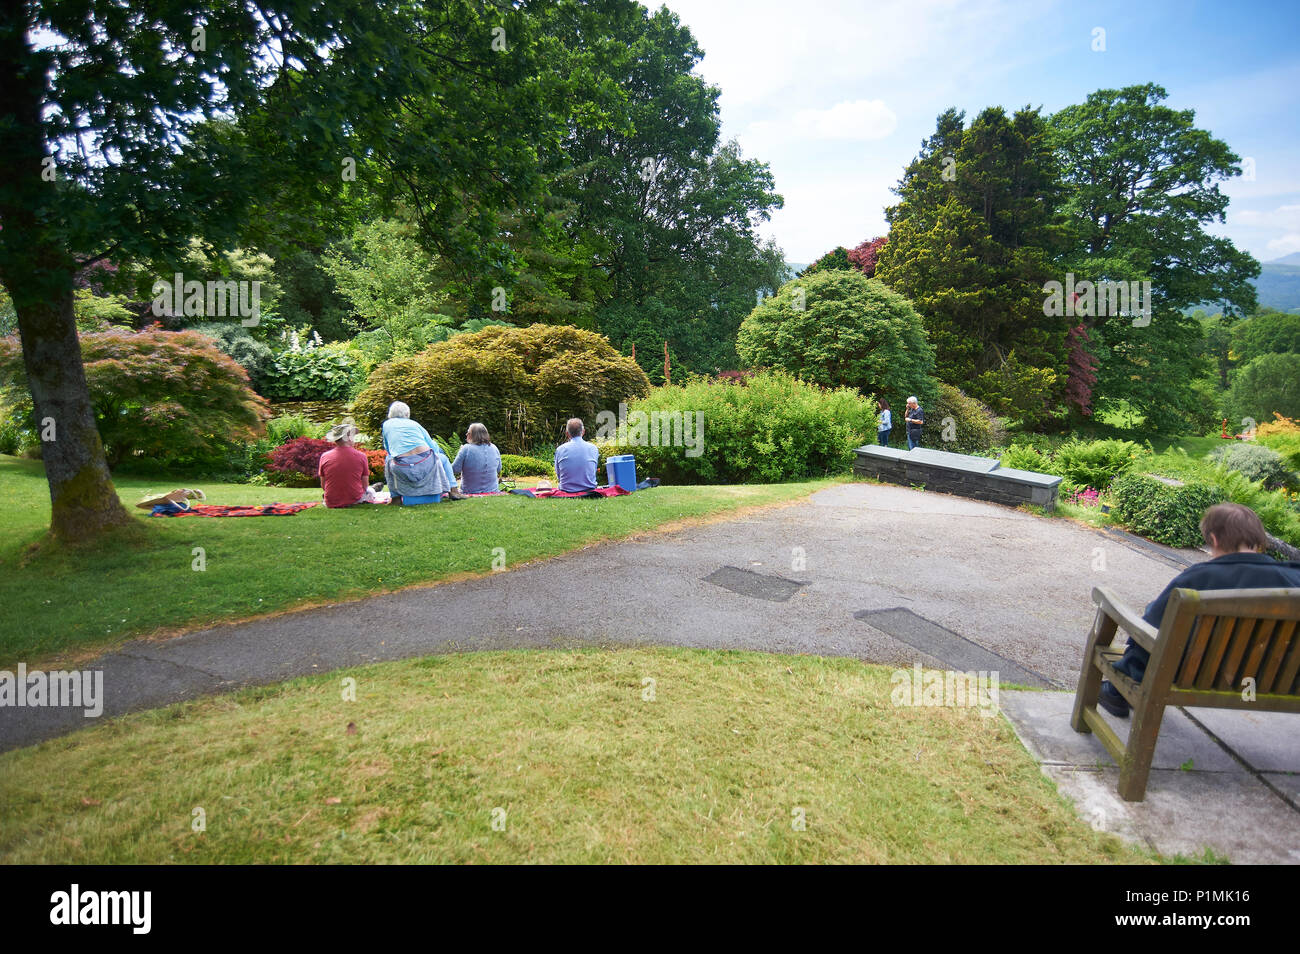 A group of people enjoying a picnic at Holehird gardens, Windermere, Cumbria, England. It is the home of the Lakeland Horticultural Society - Stock Image